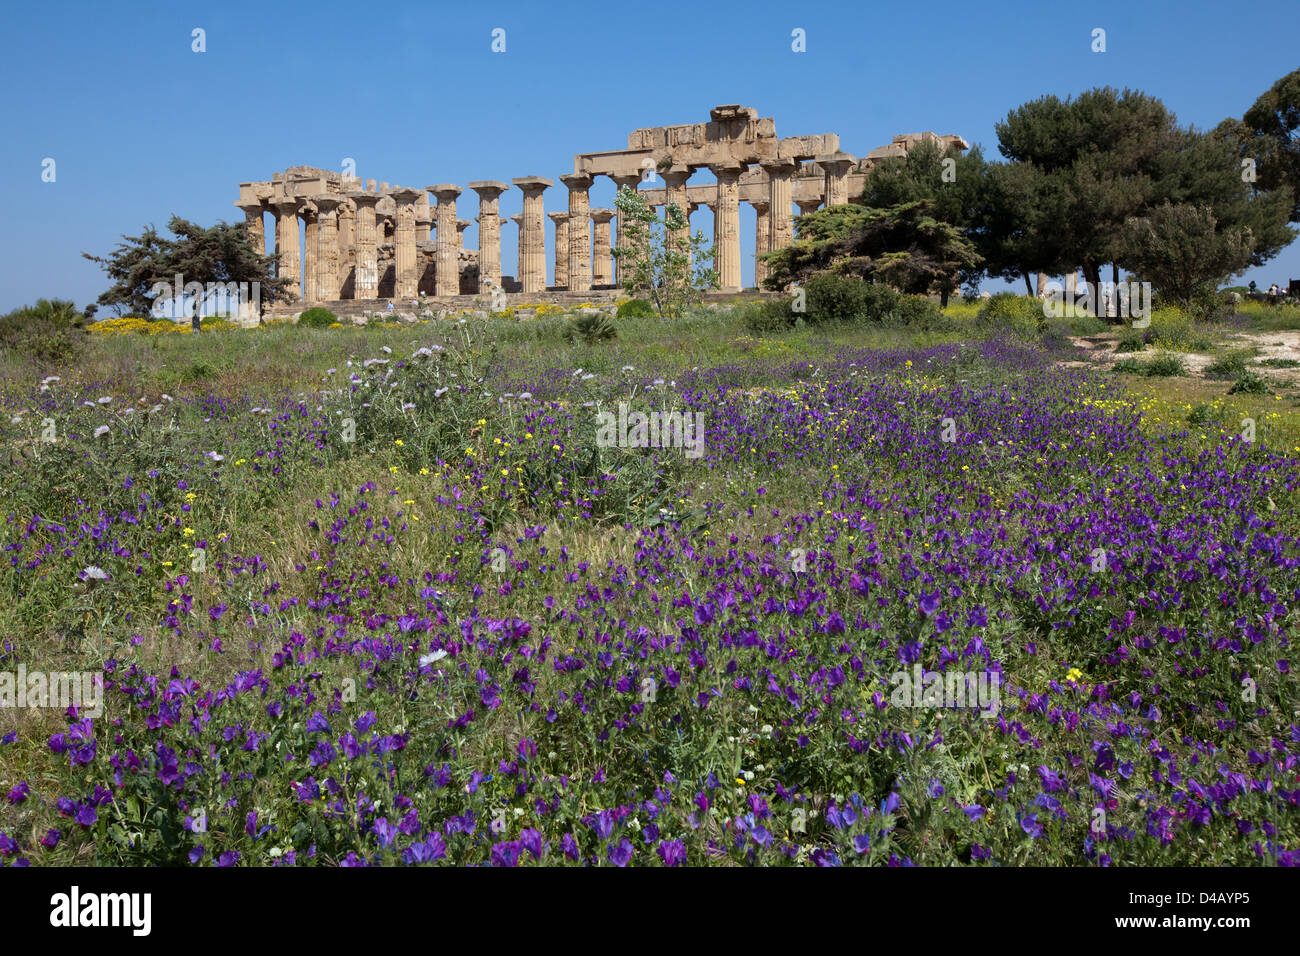 Selinunte, Italy, archeological area of the ancient Greek city of Selinus - Stock Image